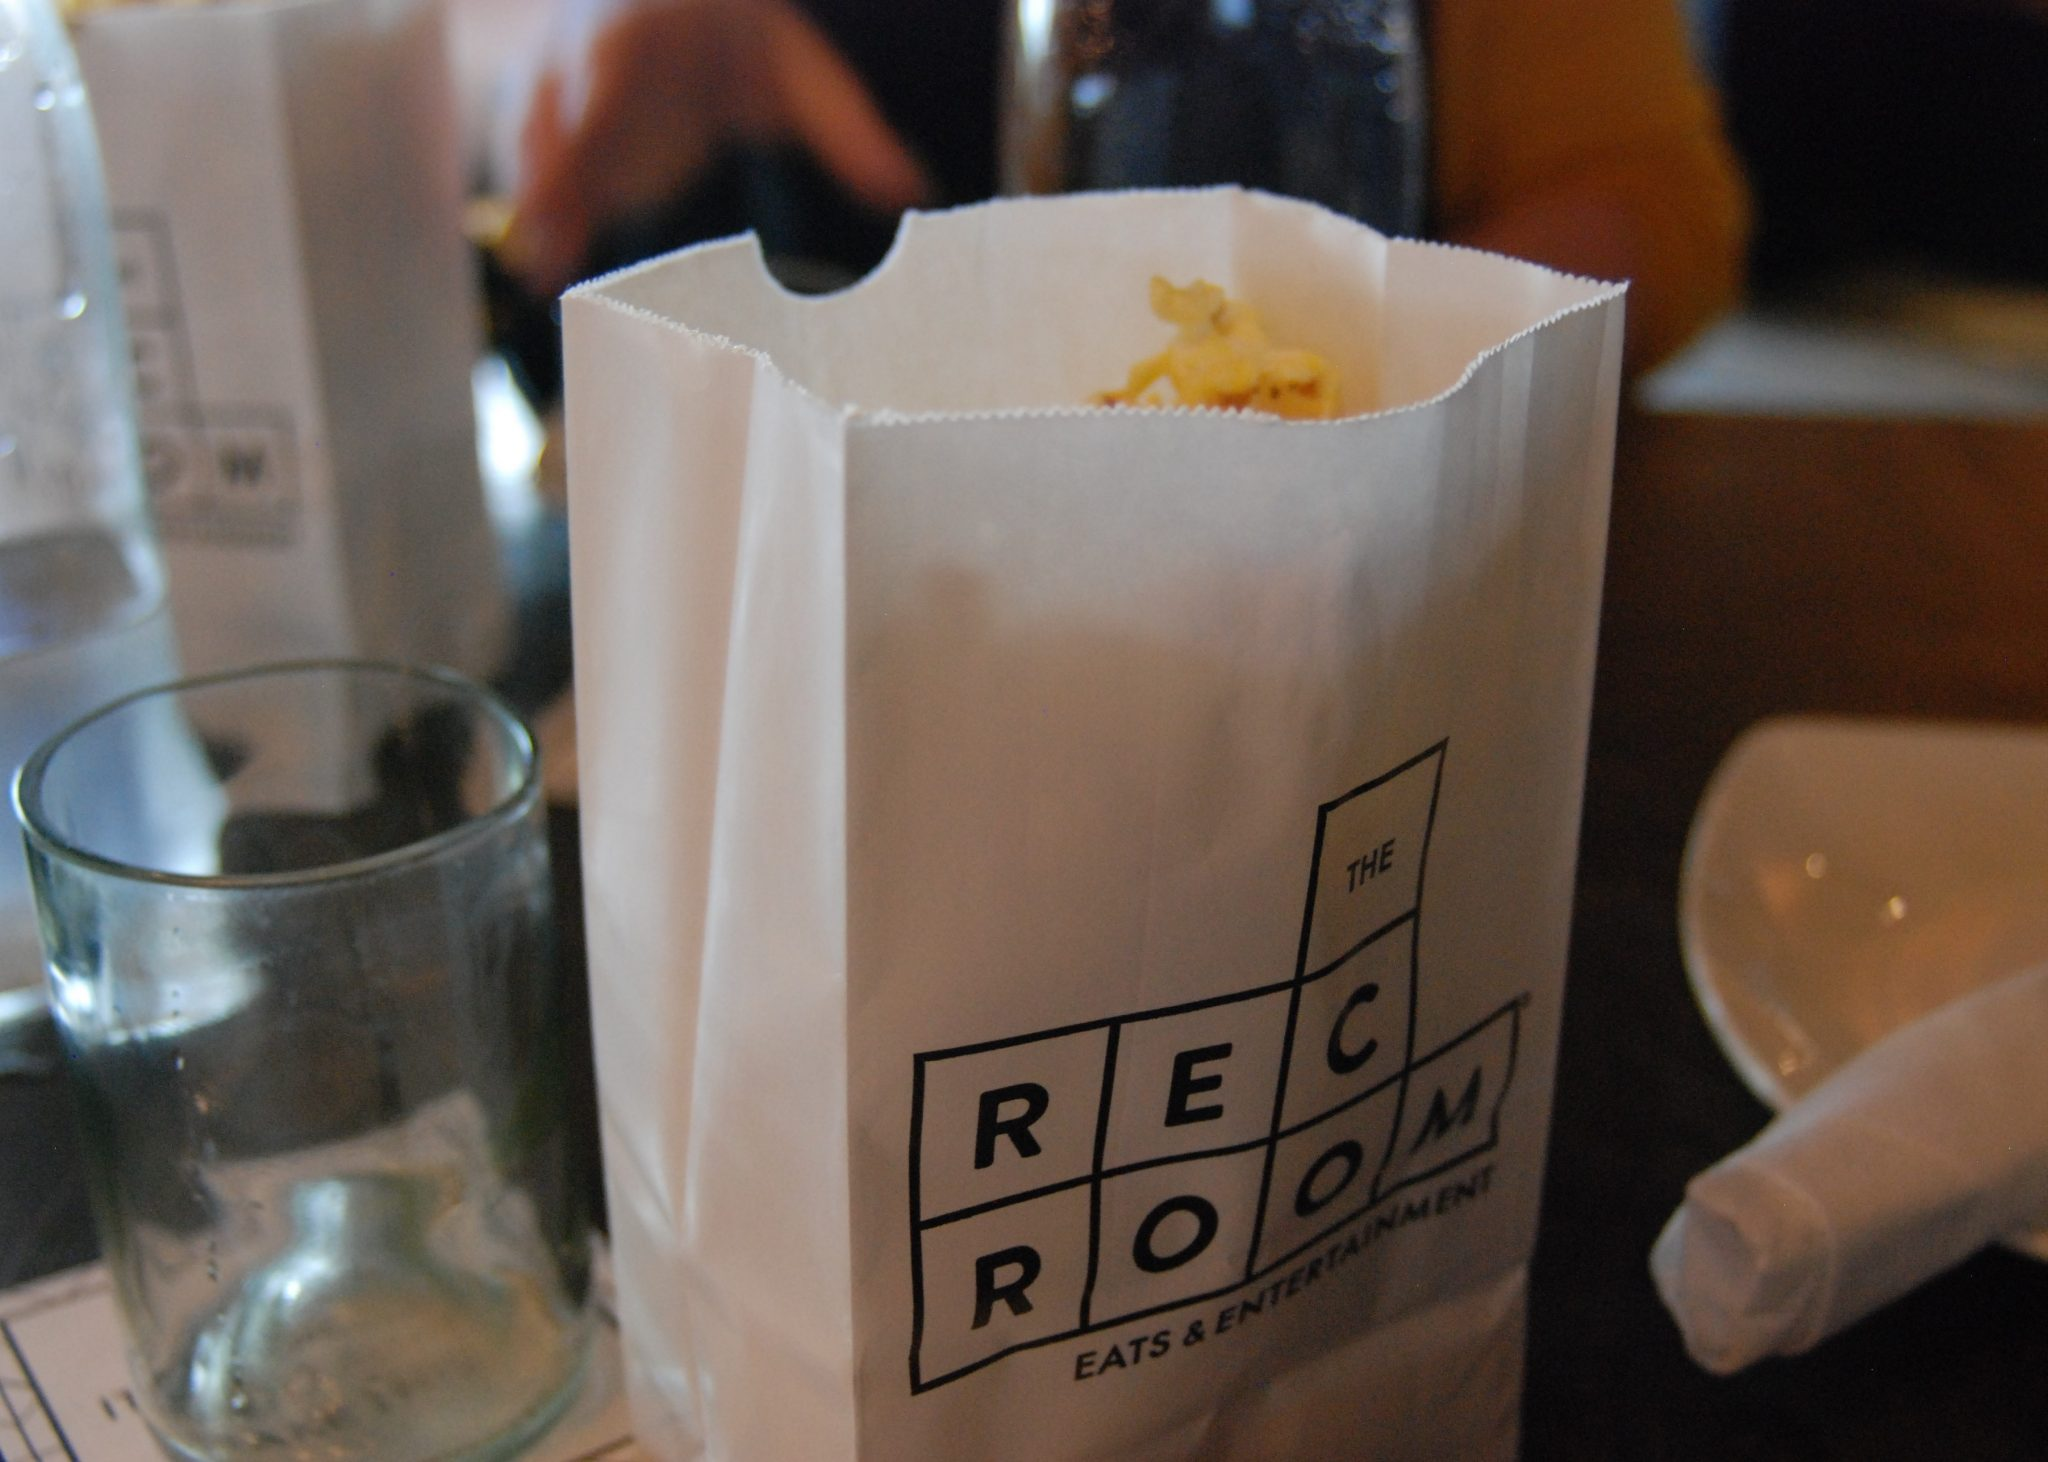 Satisfy your hunger for gaming at the Rec Room. Popcorn from the Rec Room in London, Ontario.Photo by Emily Stewart.